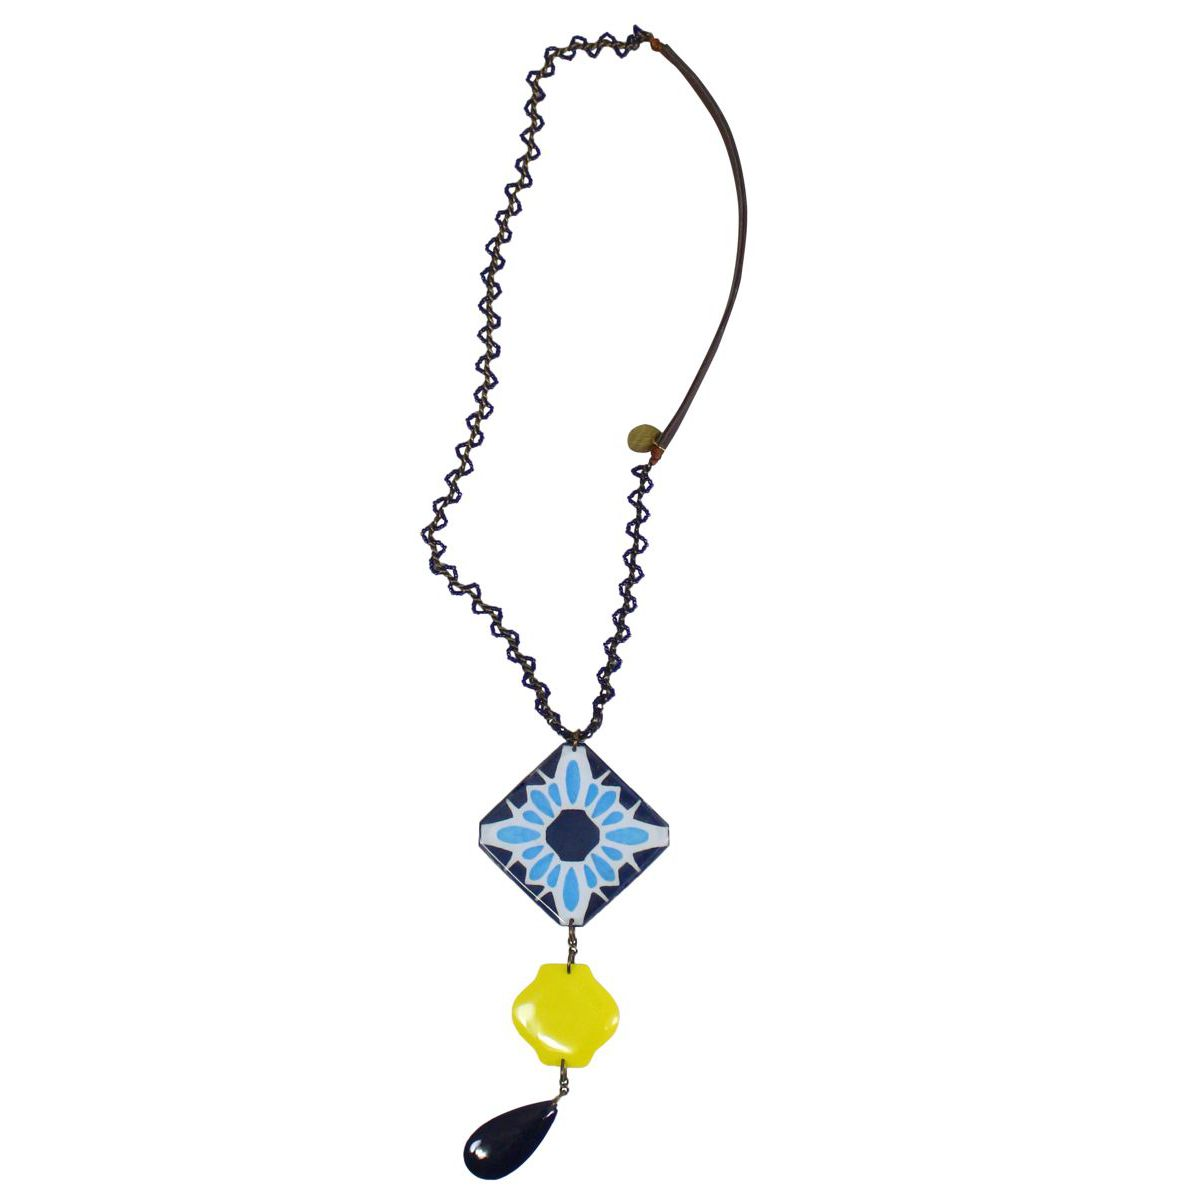 Collana new resin Blu / giallo Maliparmi